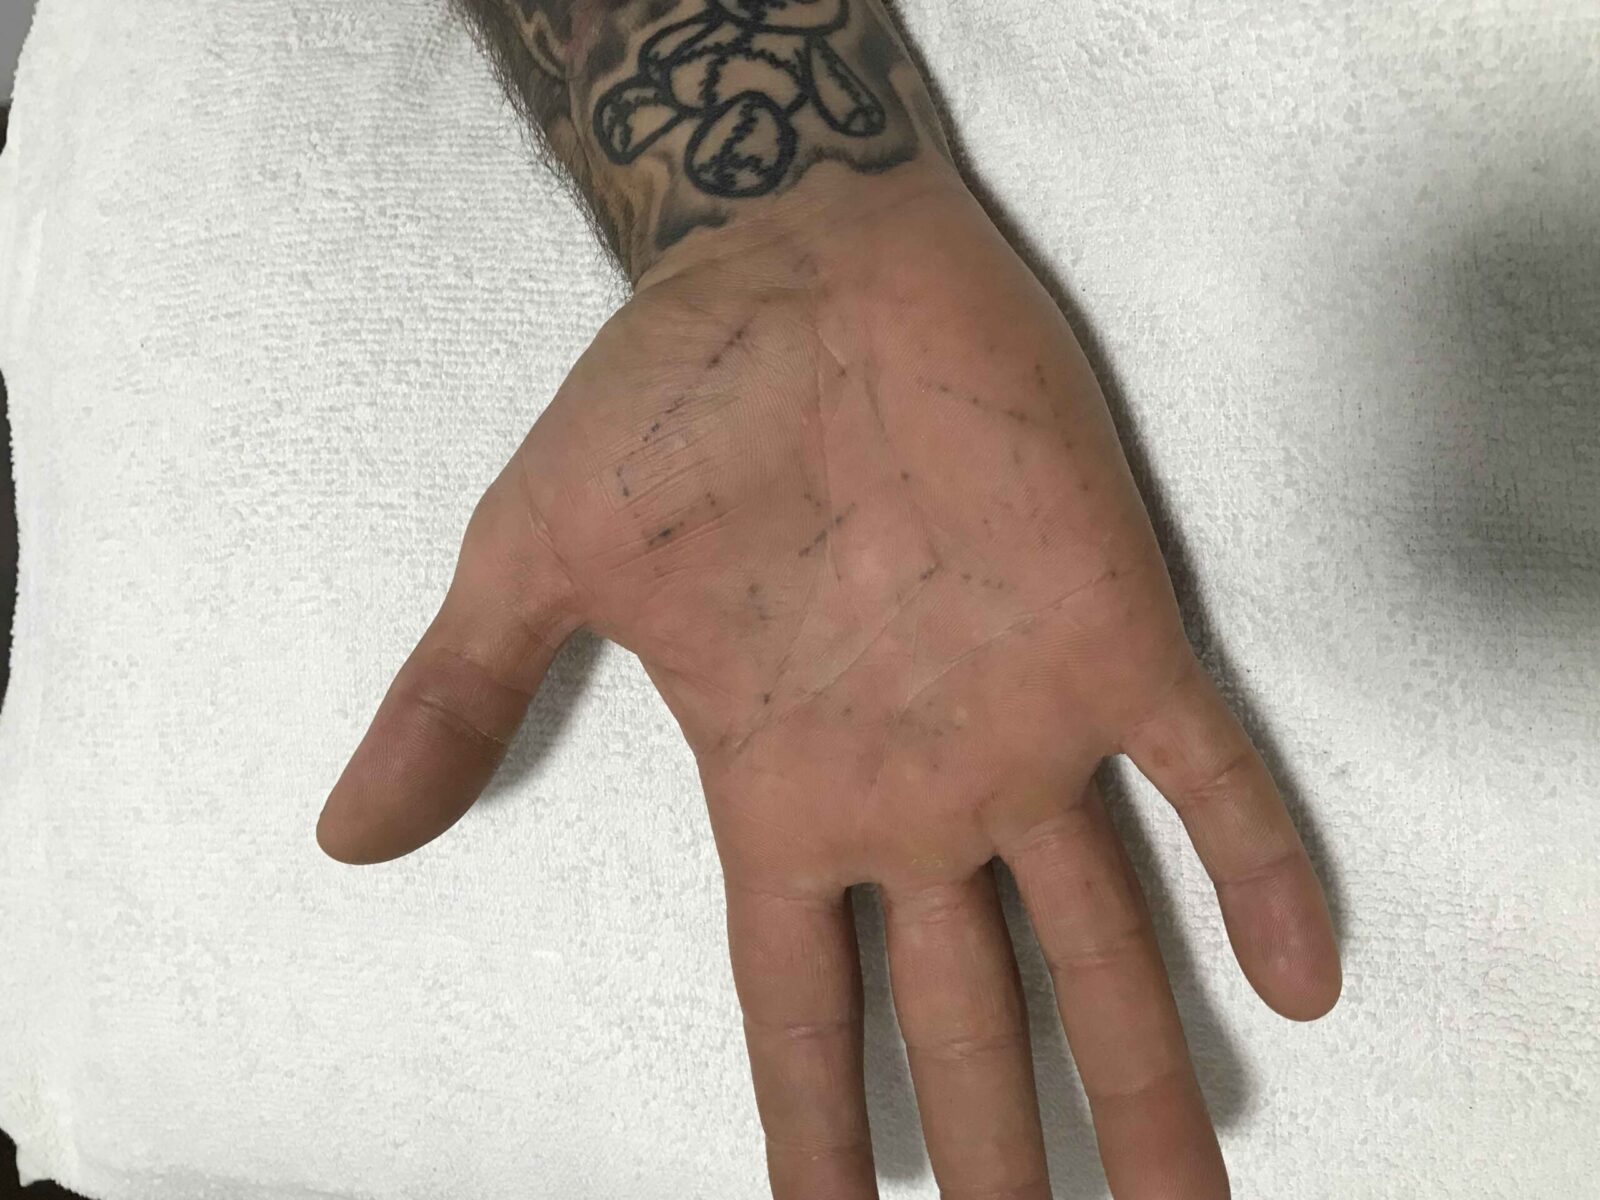 Tattoo - After Image | Tattoo Removal Adelaide